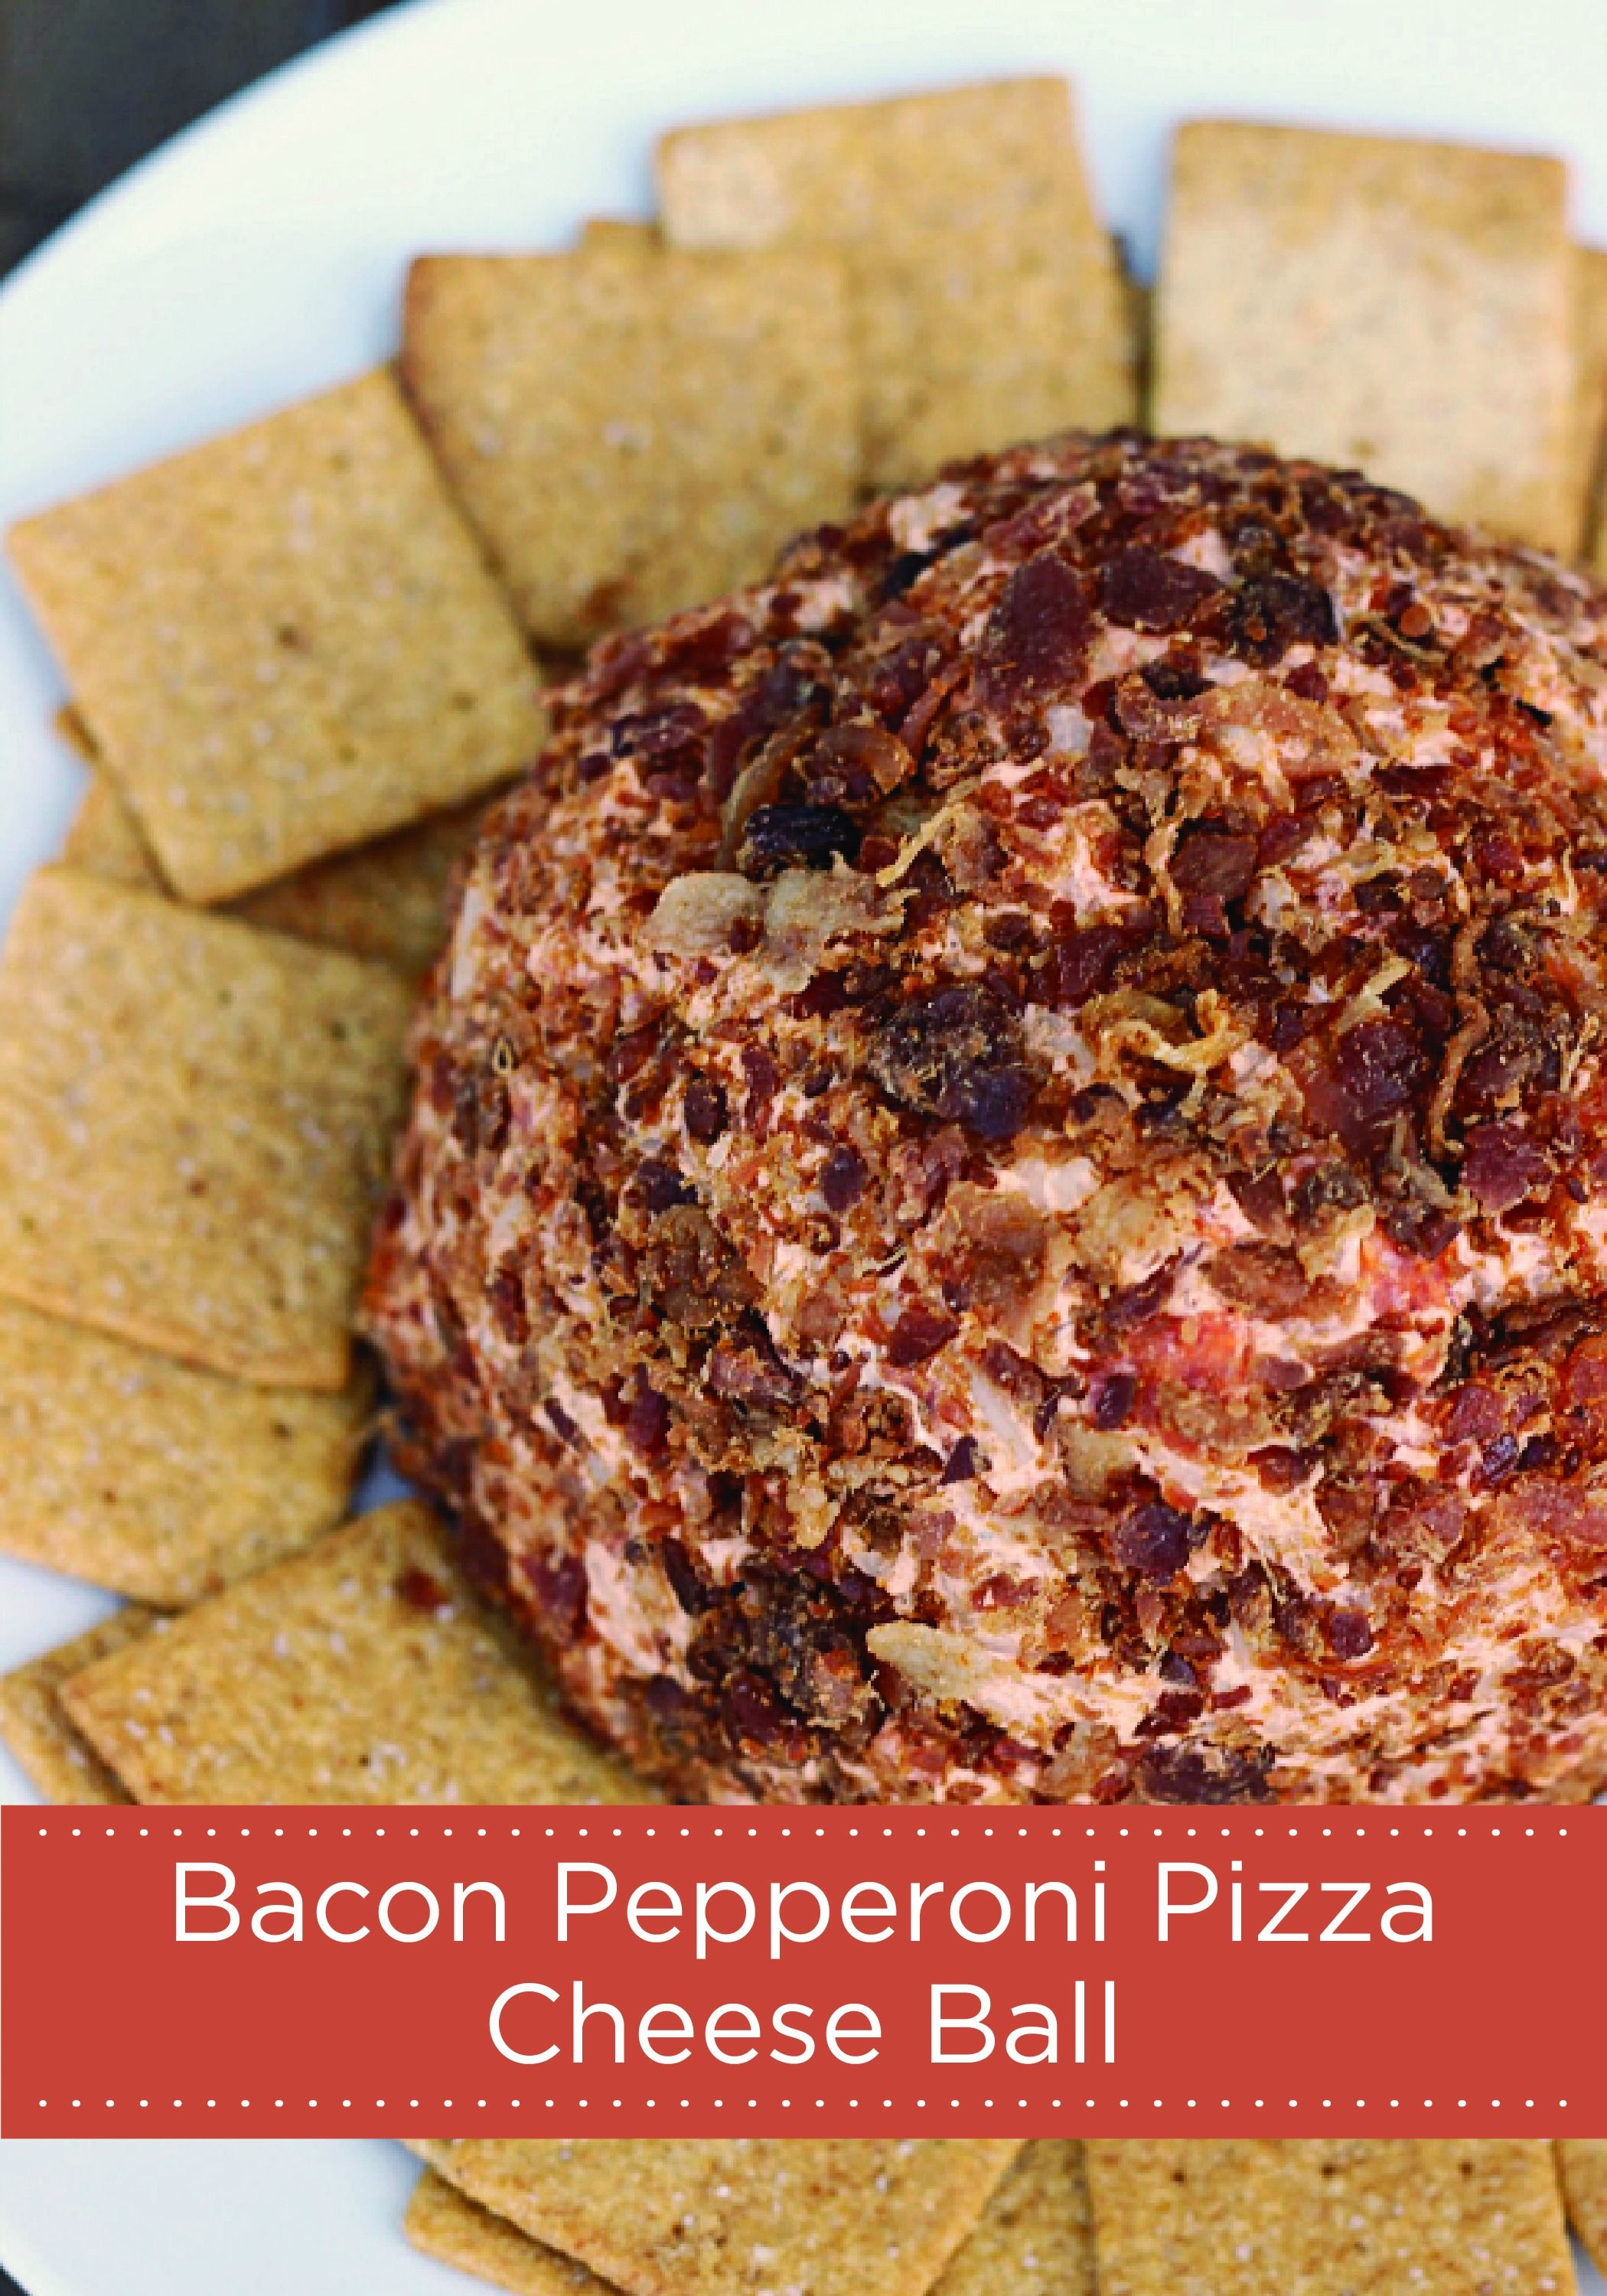 Bacon Pepperoni Pizza Cheese Ball Whats Cooking Love Recipe Cheese Ball Cheese Ball Recipes Snack Time